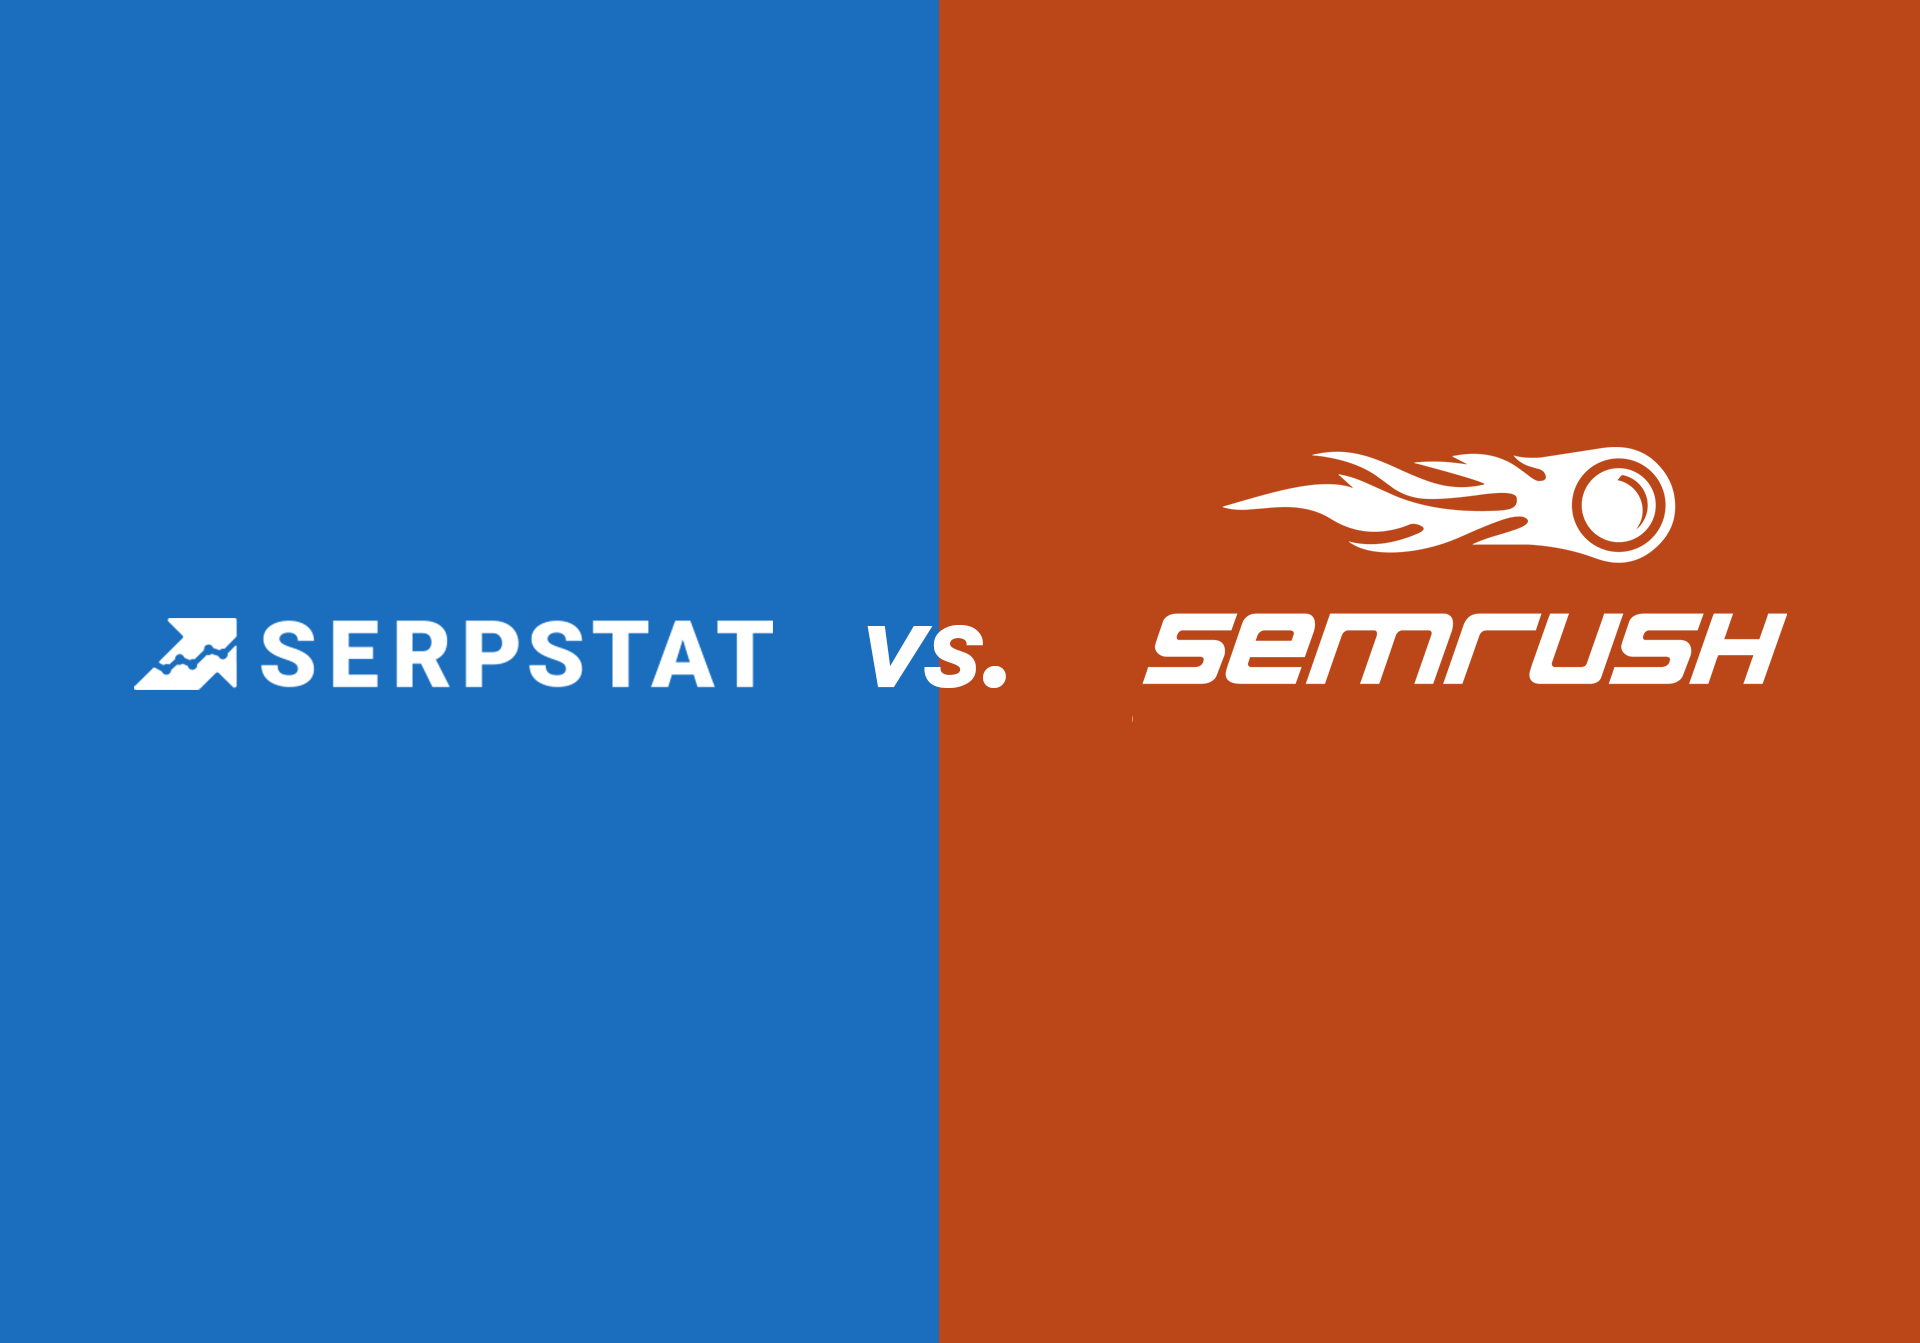 Box Size Semrush